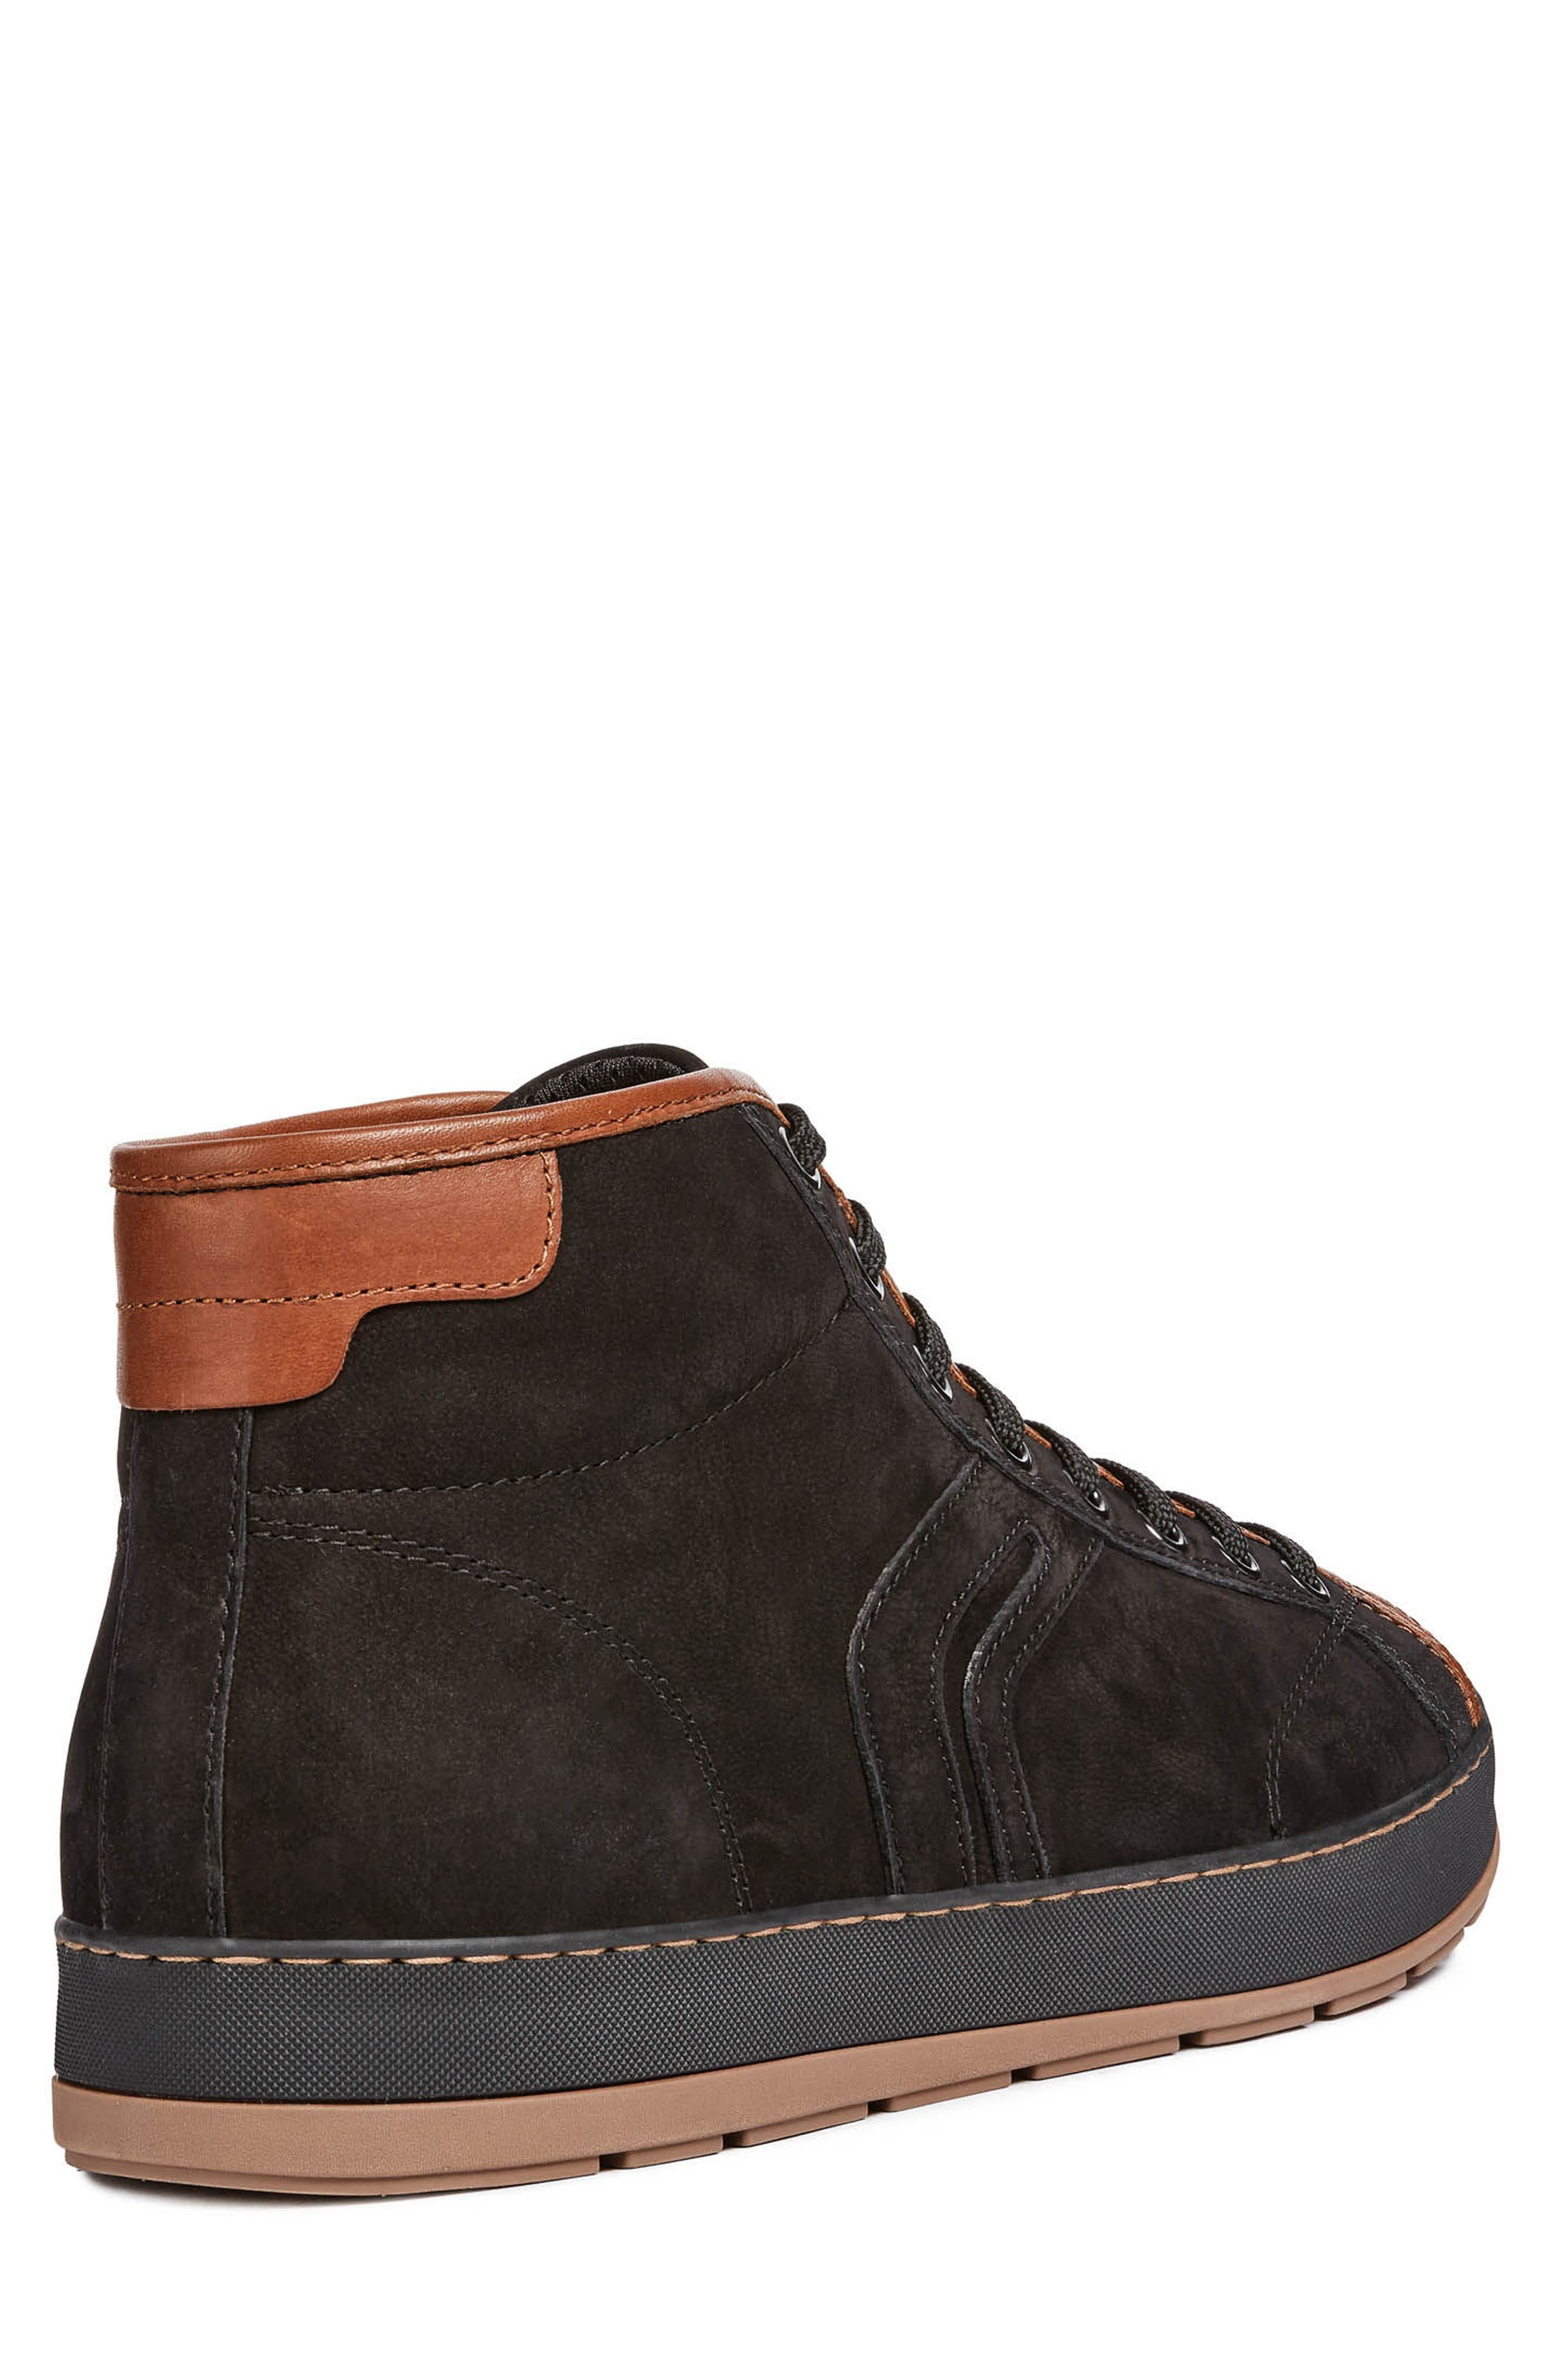 Ariam High Top Sneaker,                             Alternate thumbnail 2, color,                             203